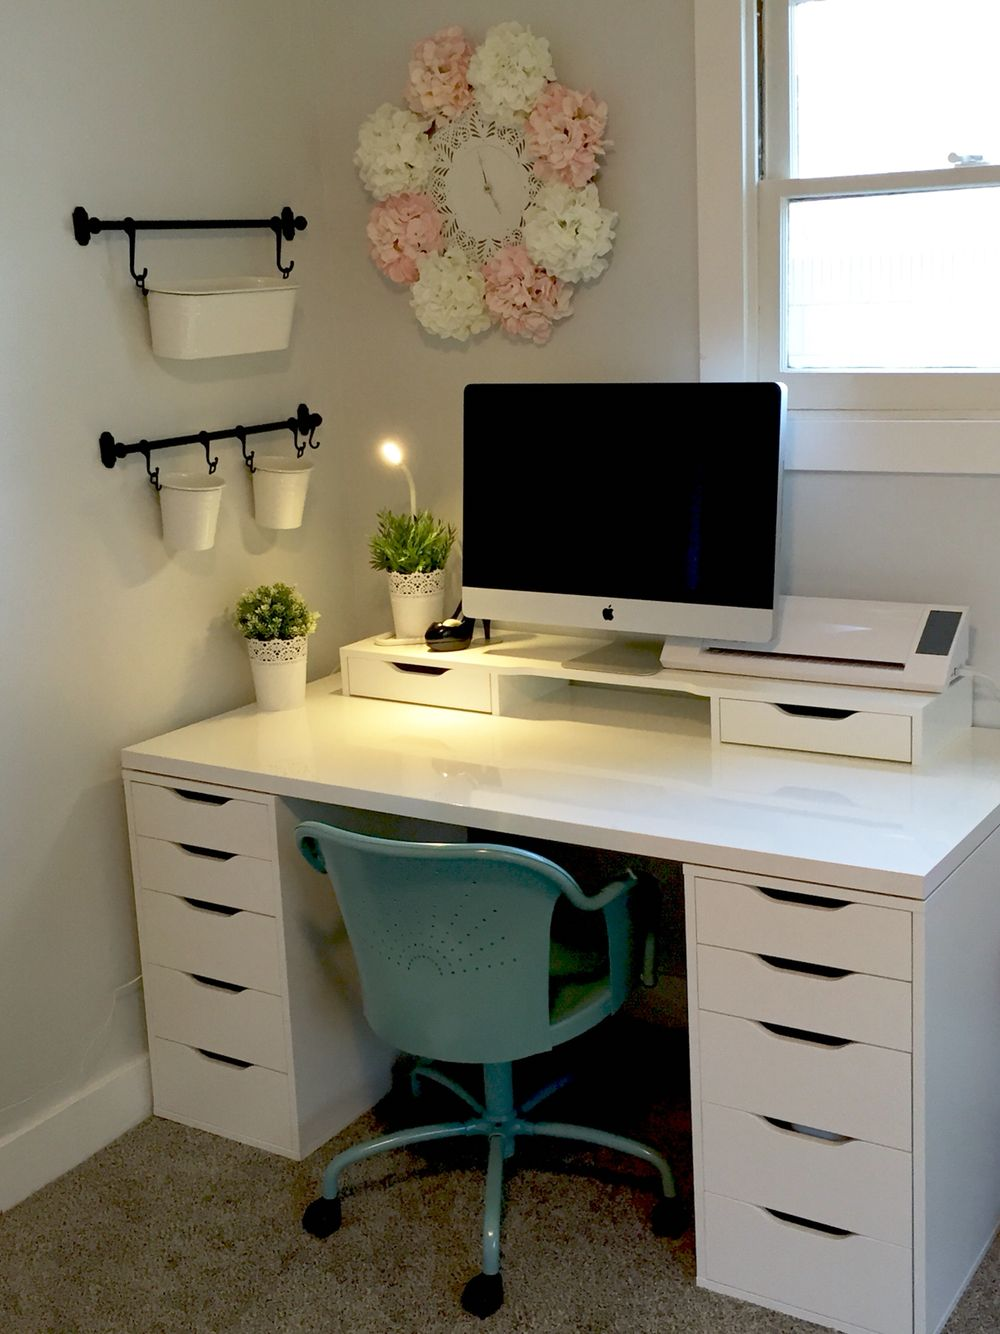 The 25 best ikea alex desk ideas on pinterest desks Amenagement bureau ikea